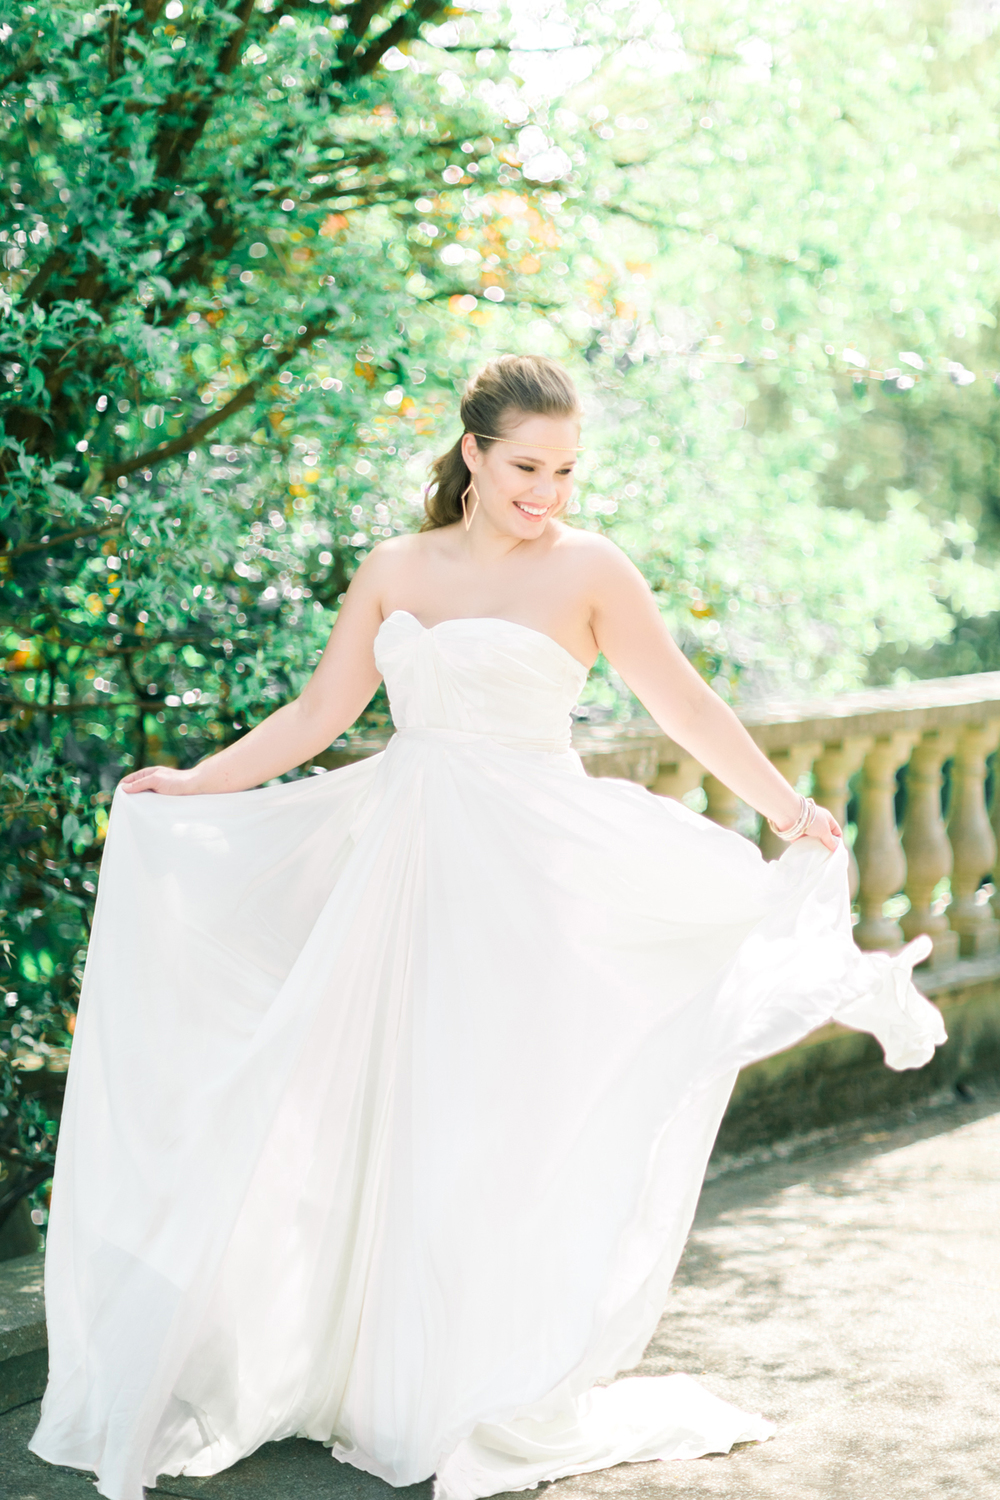 wedding dress shopping-bridal stylist-personal shopping weddings-charlotte munro